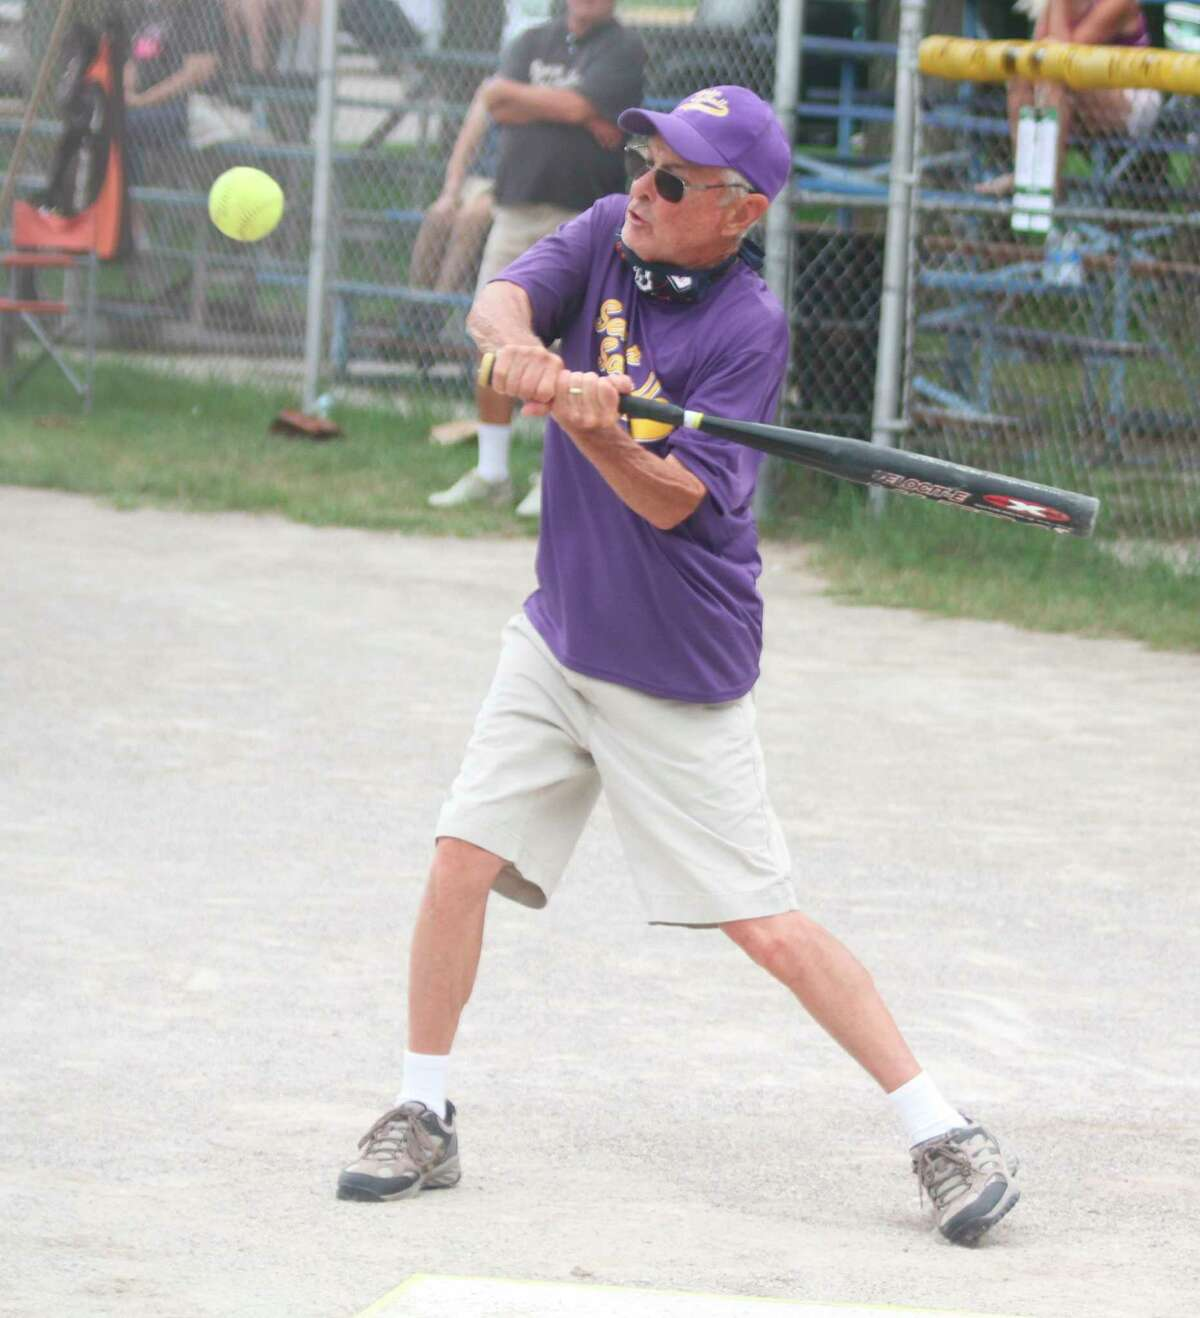 The Manistee Senior Softball team plans to hold pickup games at 10 a.m. on the First Street Beach field of Manistee every Monday, Wednesday and Friday throughout the 2021 season. (News Advocate file photo)